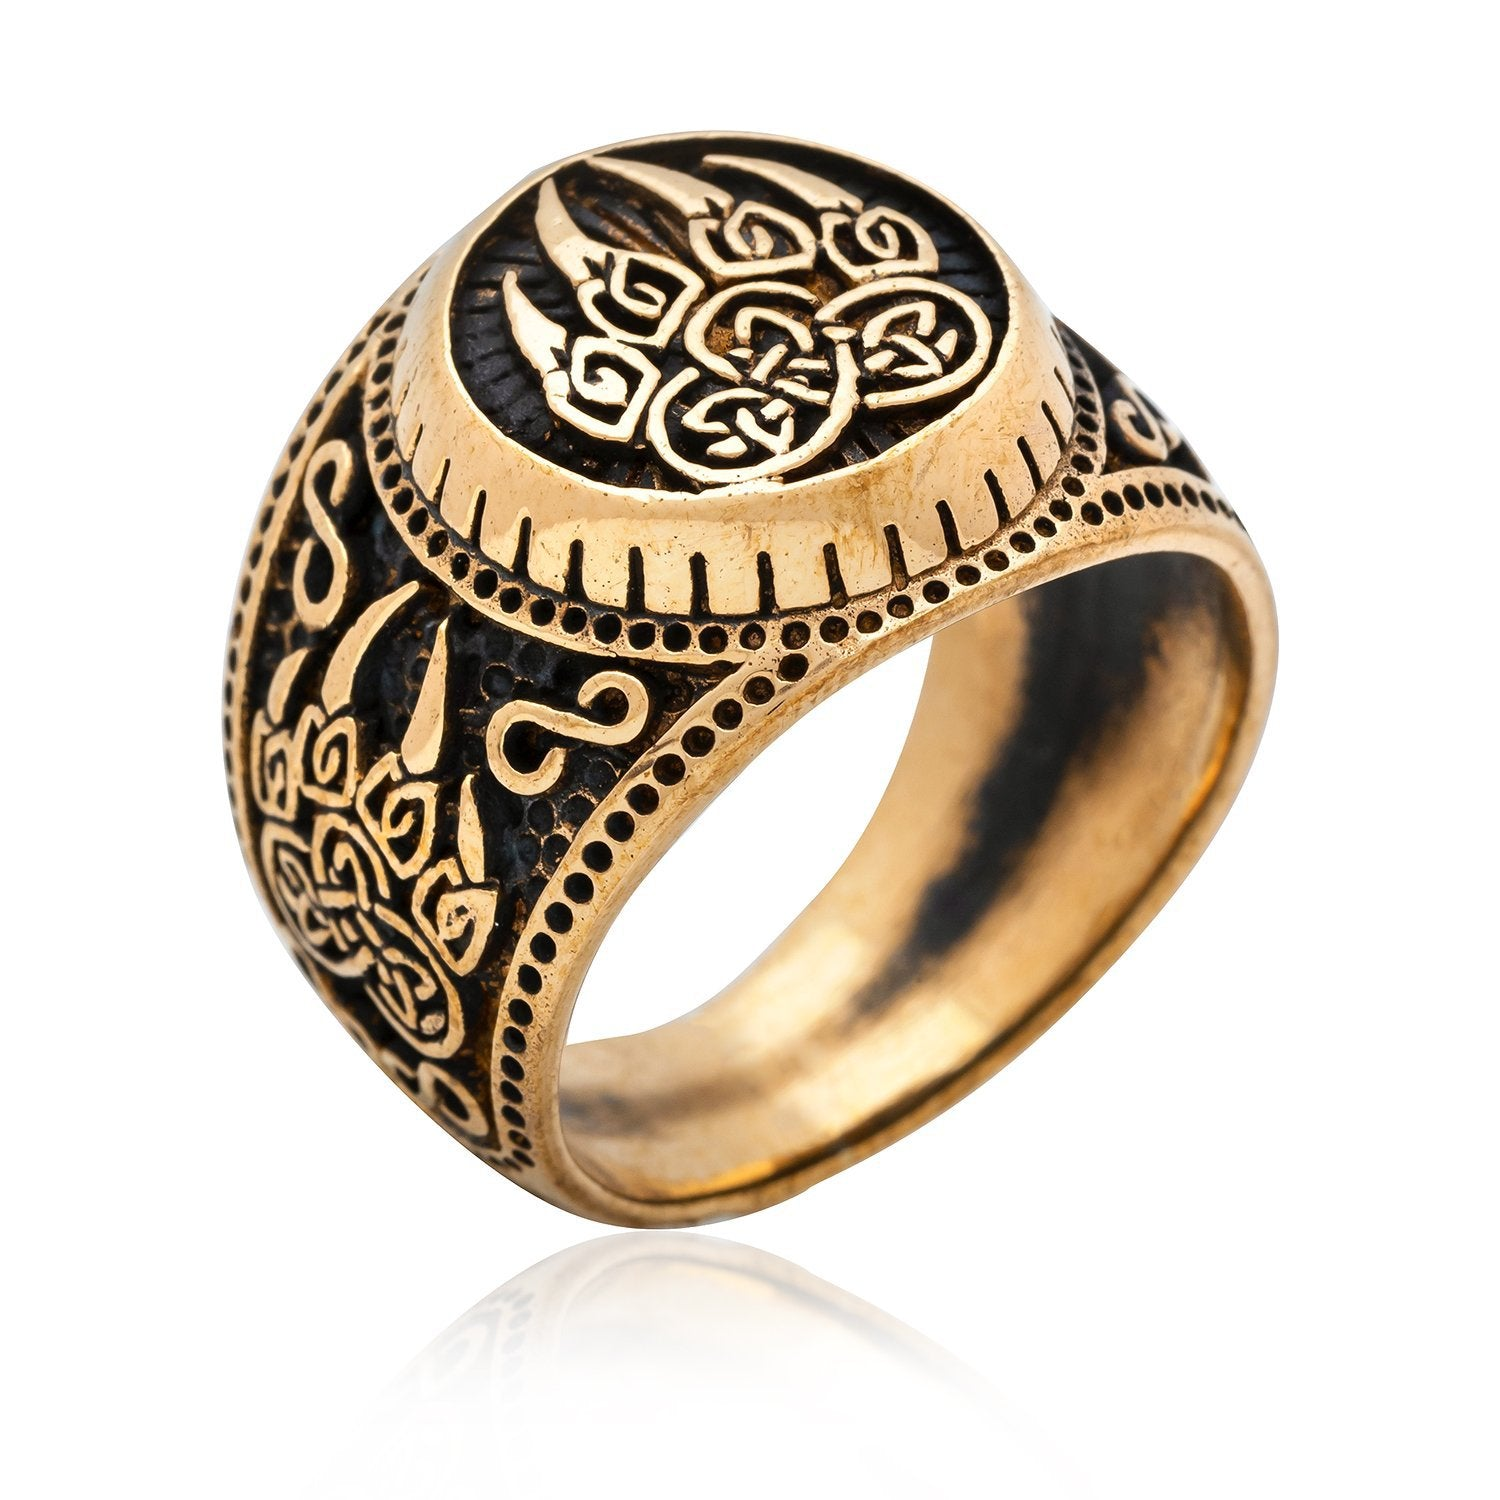 Viking Bear Claw Signet Ring Handcrafted from Bronze